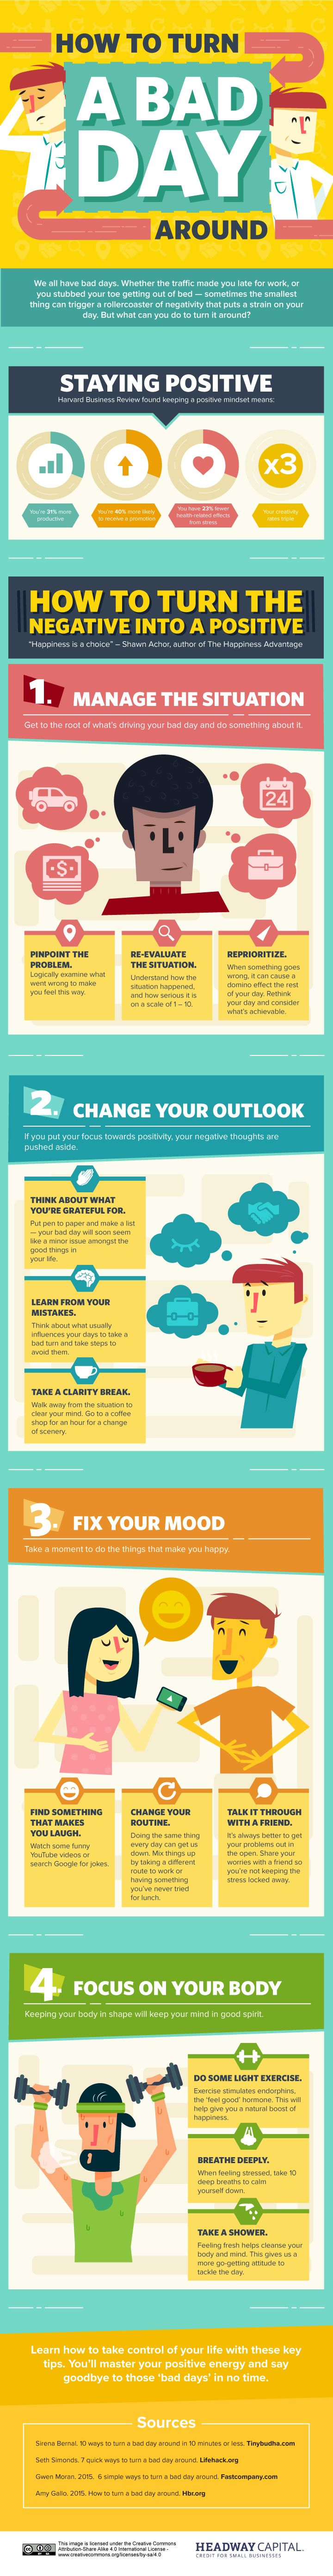 How to Turn a Bad Day Around #Infographic #HowTo